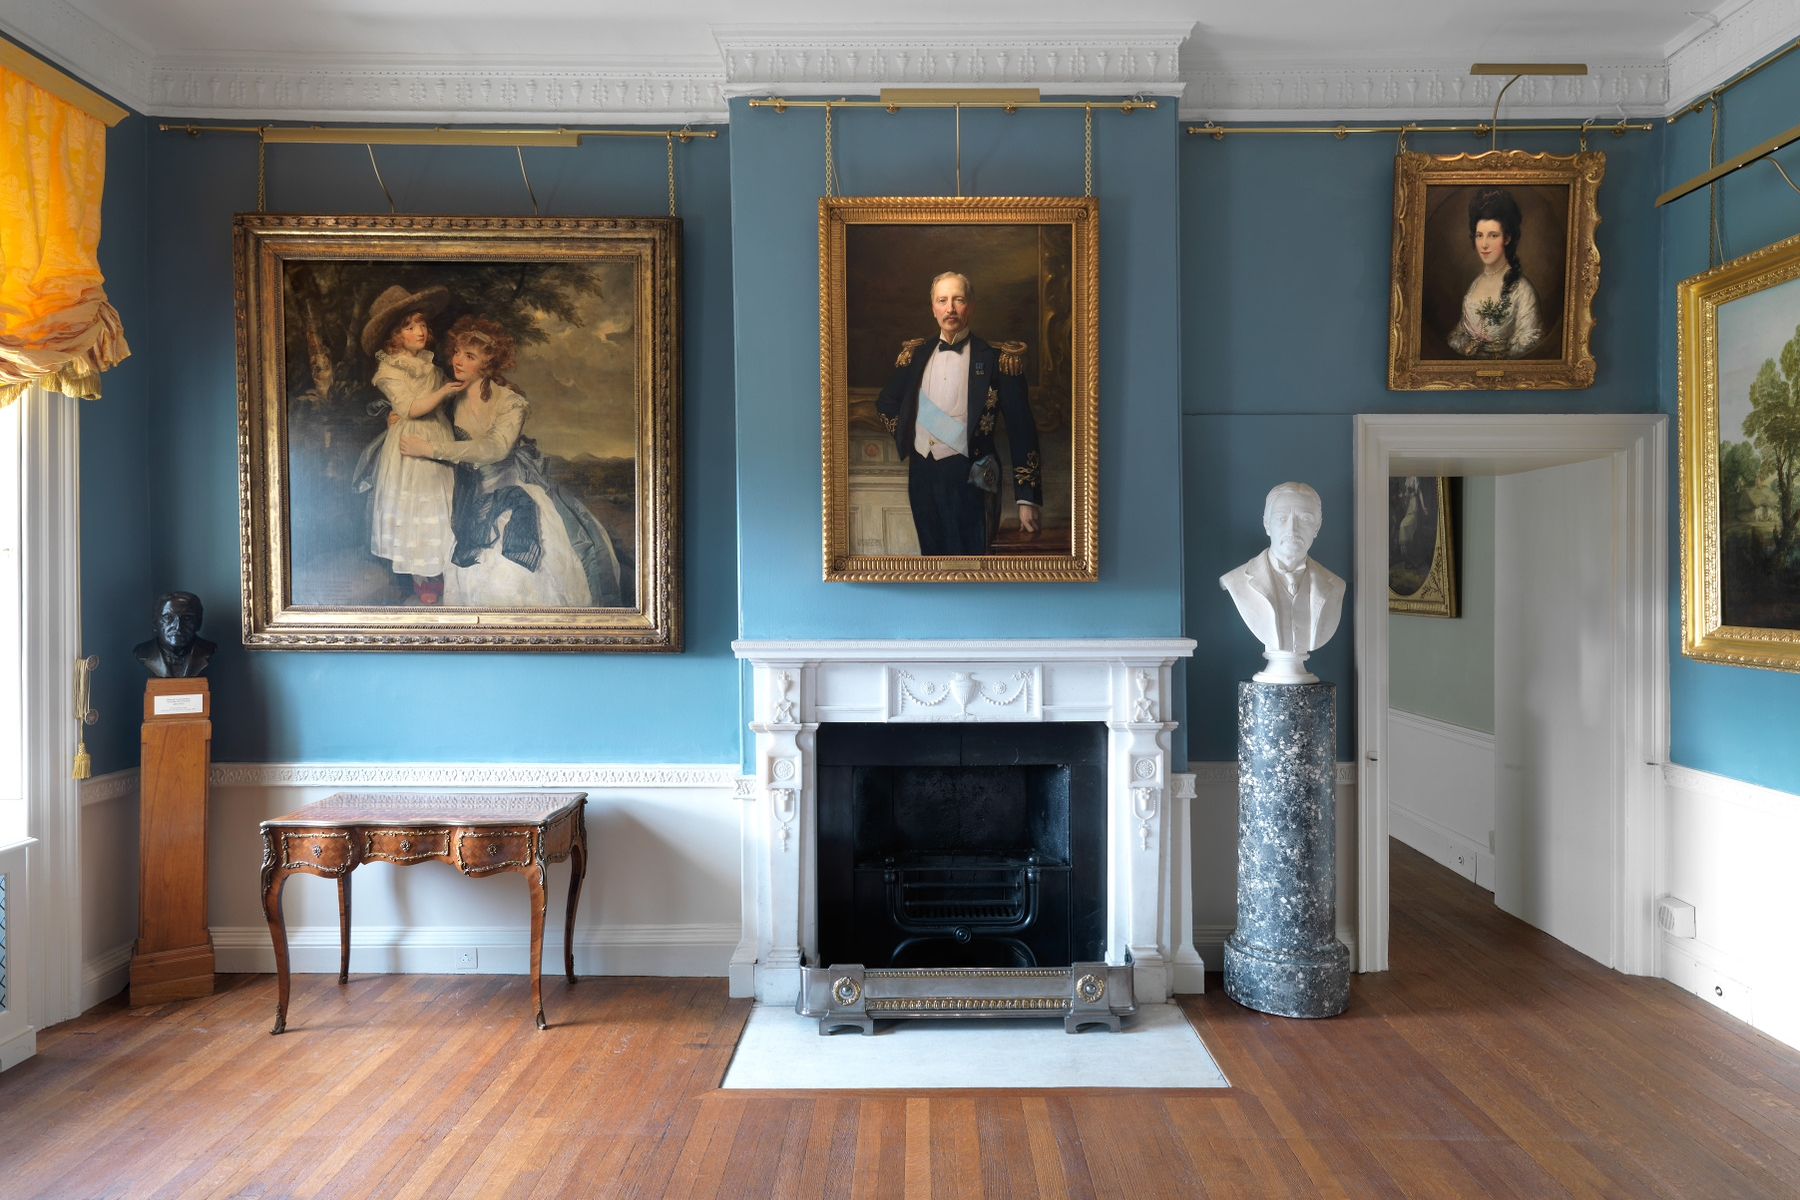 Kenwood House interior with artwork on the walls